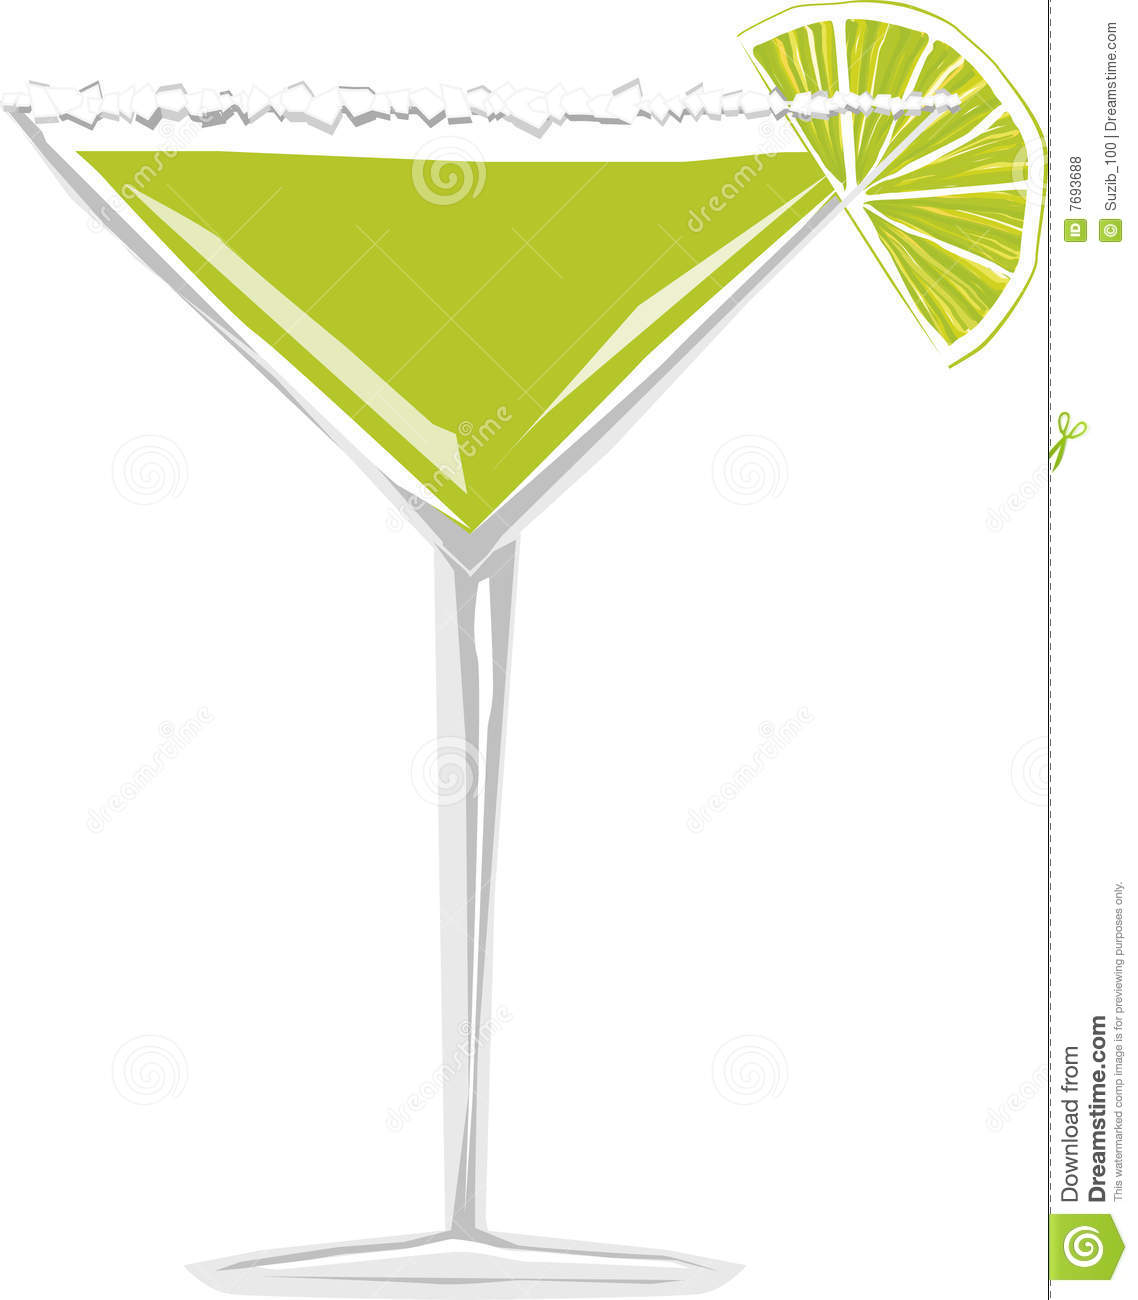 Watch more like Margarita Time Clip Art